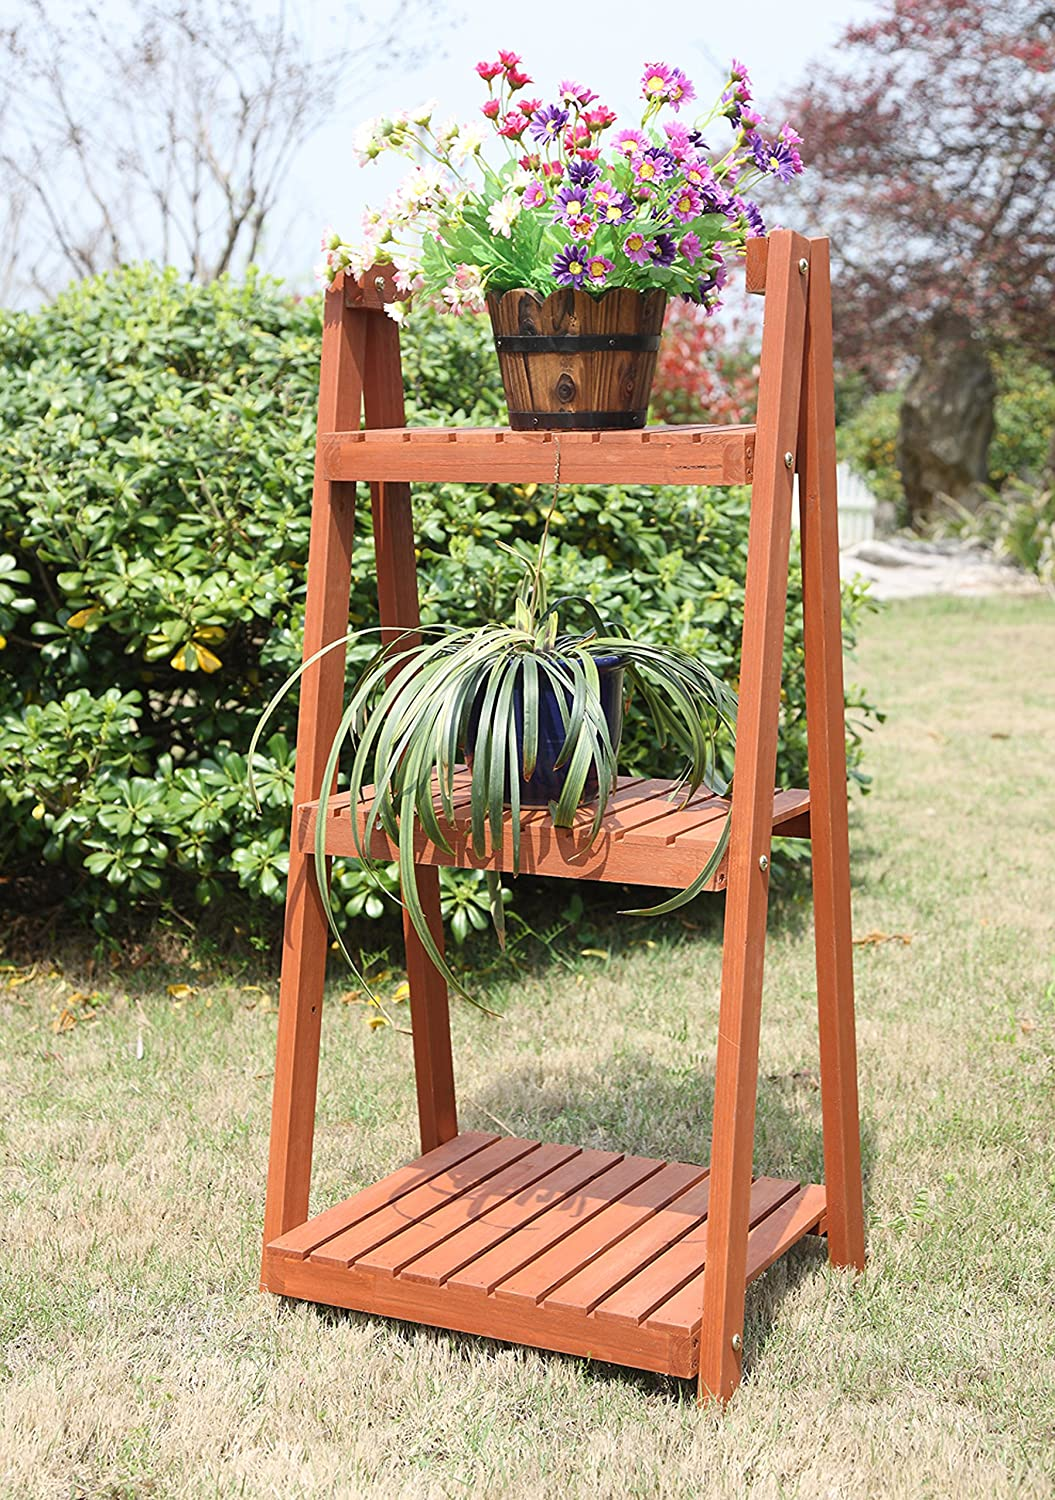 Tiered Plant Holders The Seasoning Products Sale 3 Tier Plant Stand Decorating